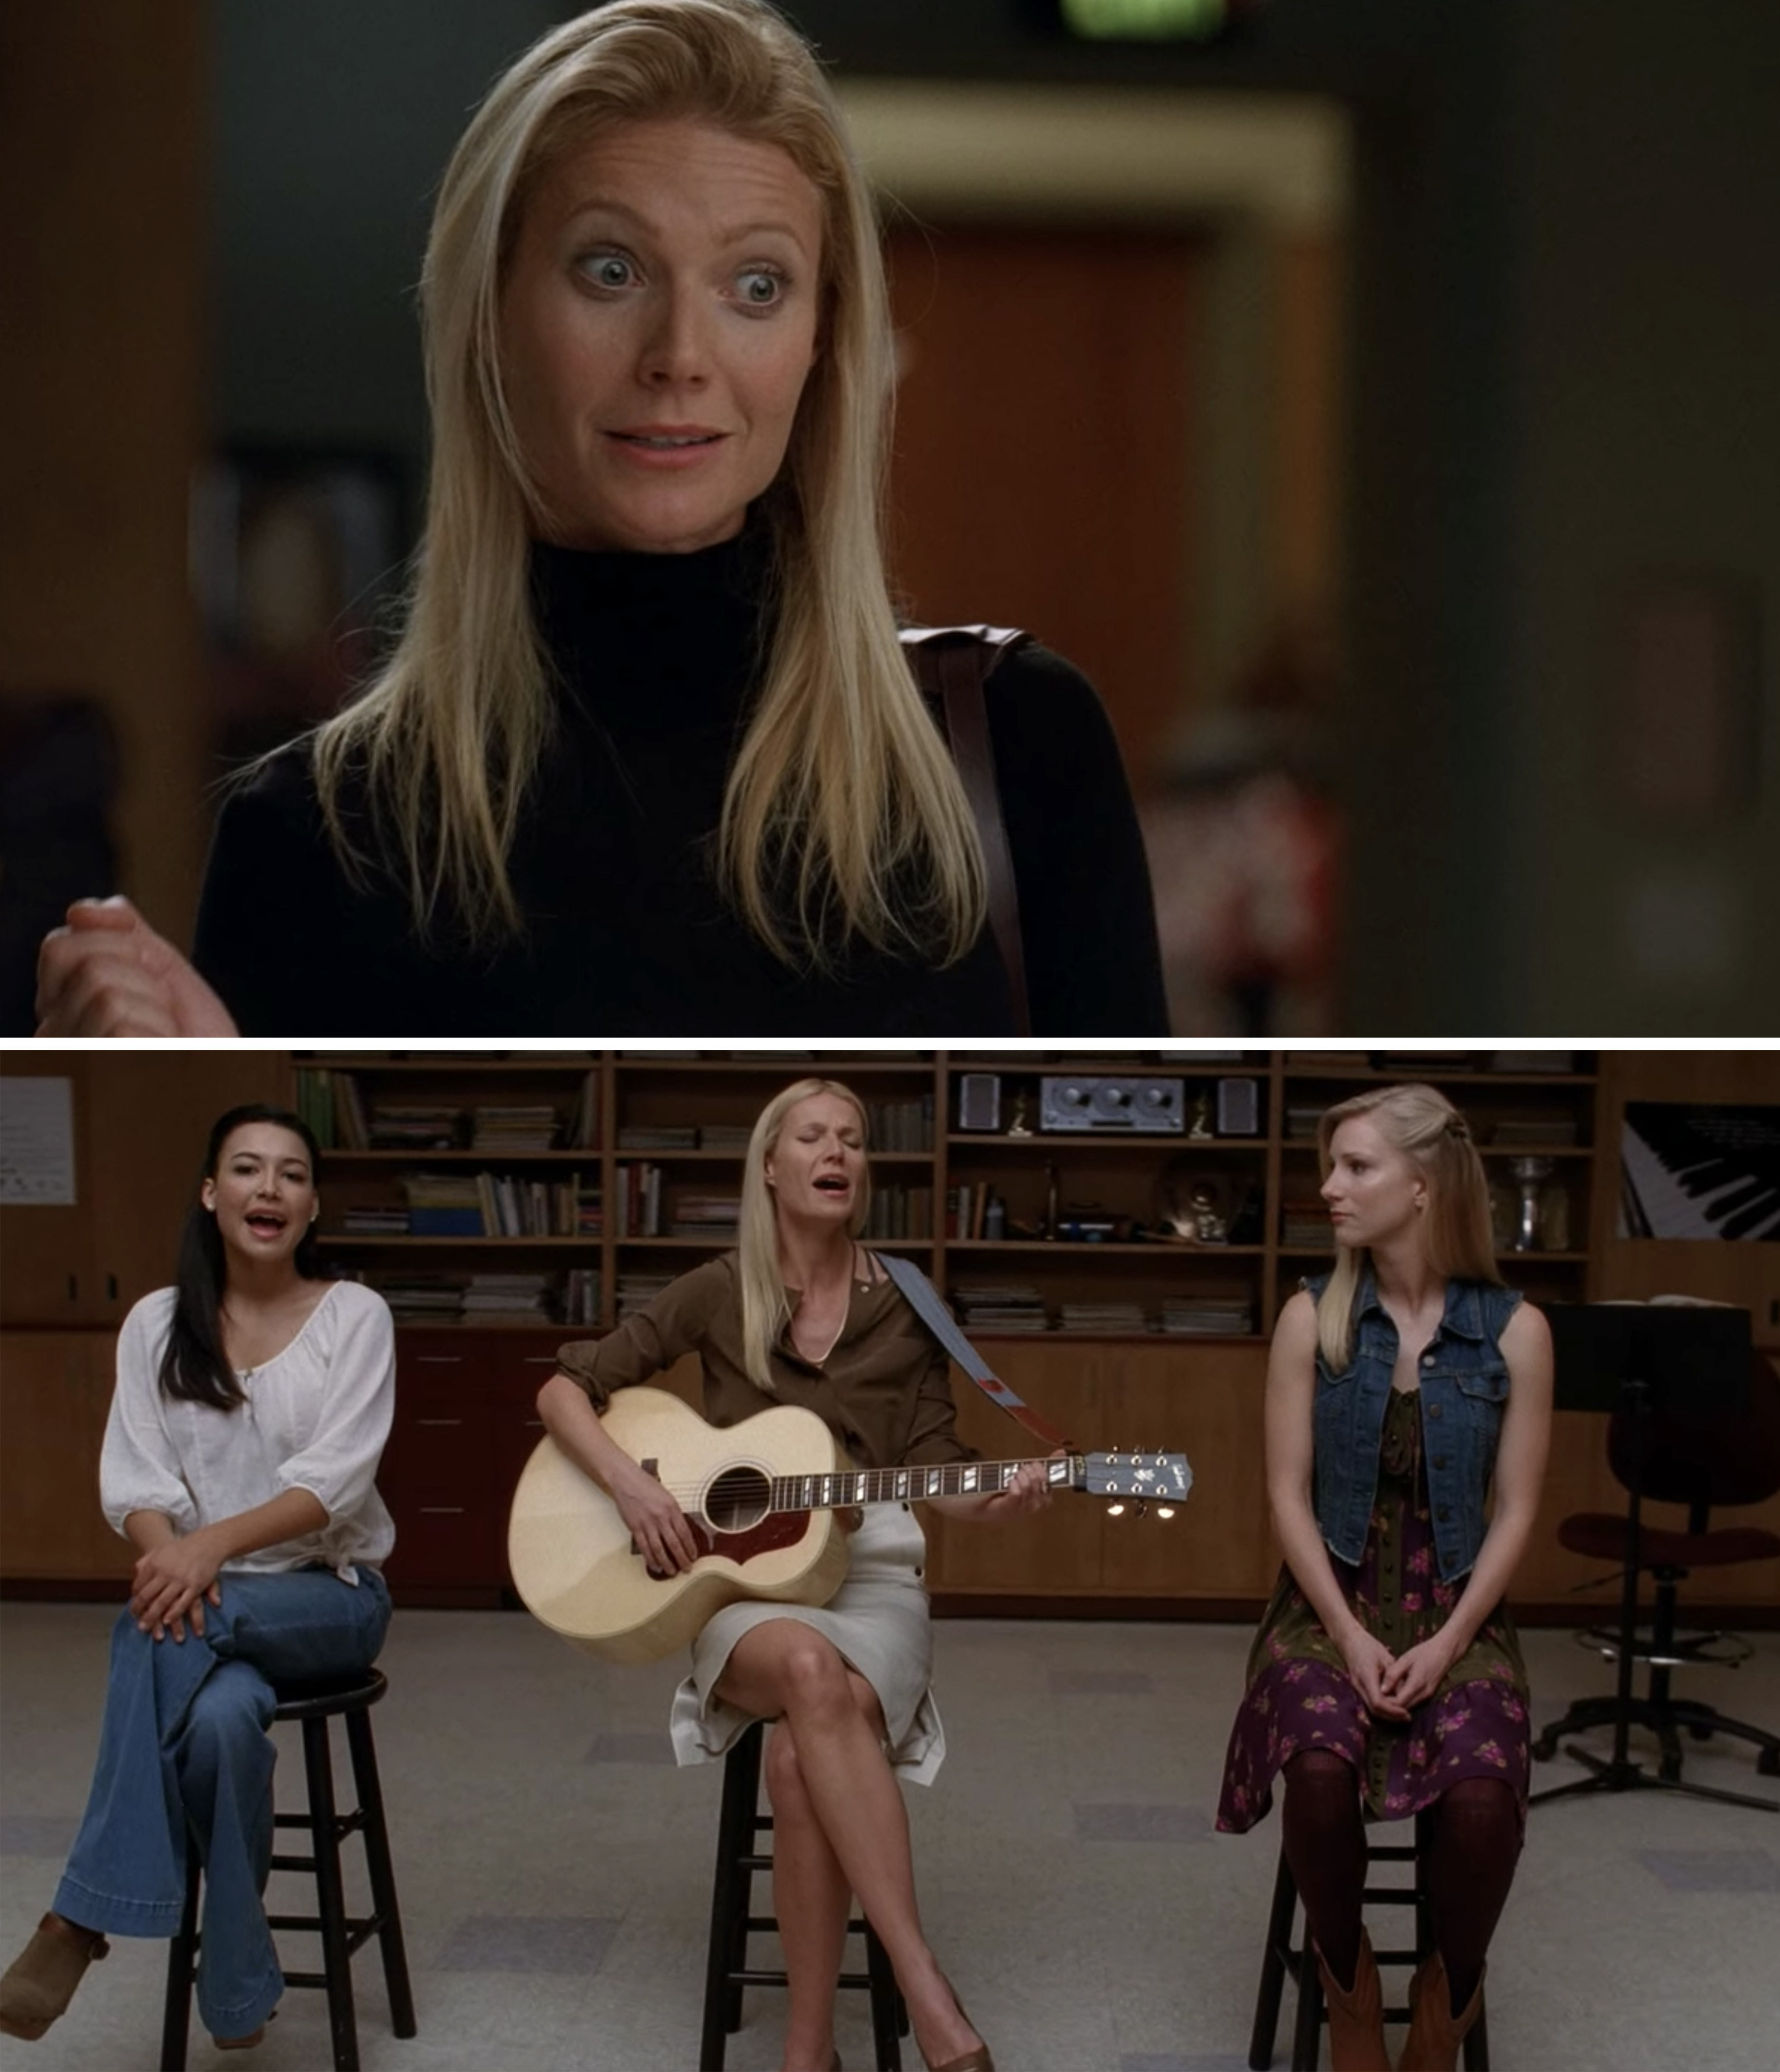 Holly singing with Santana and Brittany